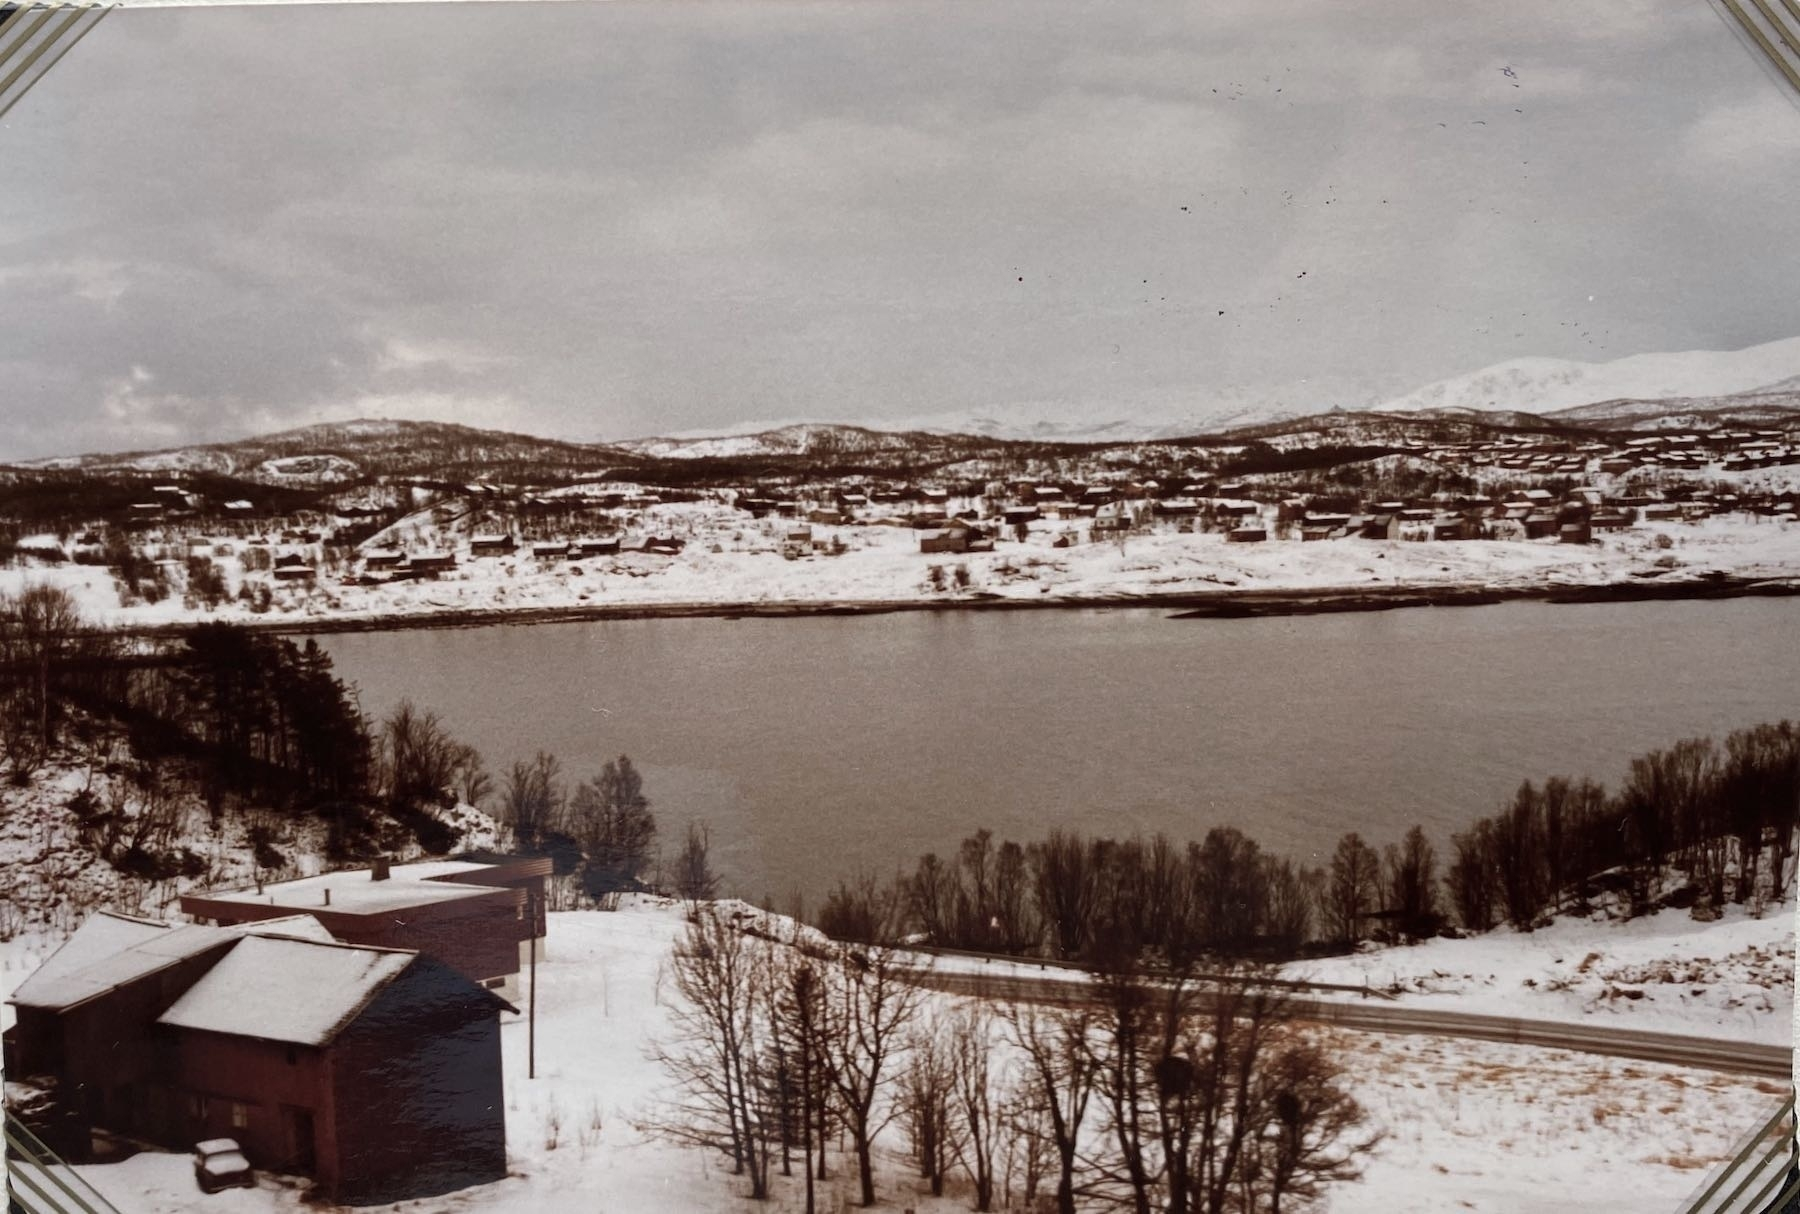 Snowy landscape and a fjord.